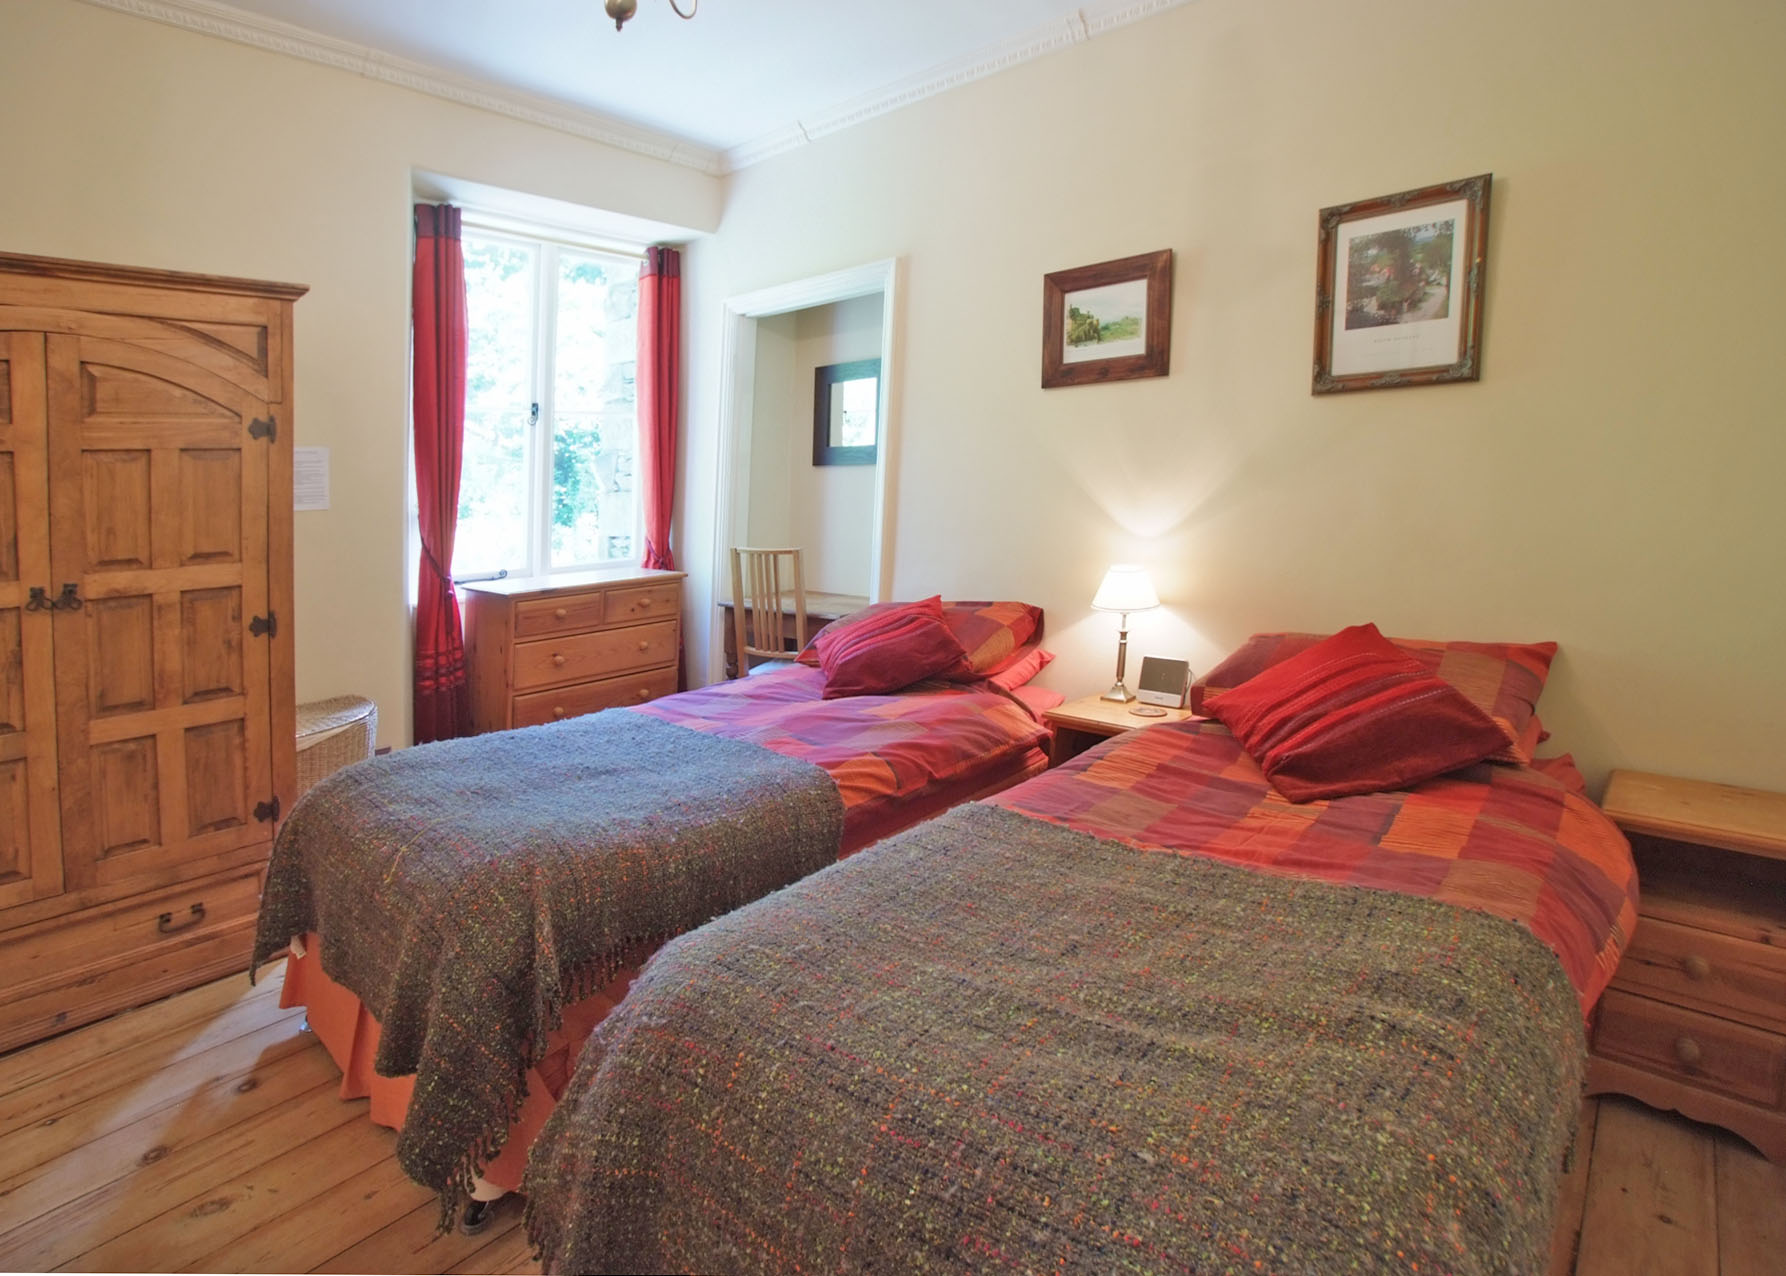 Bedroom 1 first floor tarn house luxury 8 person cottage in the heart of the lake district - Houses bedroom first floor fit needs ...